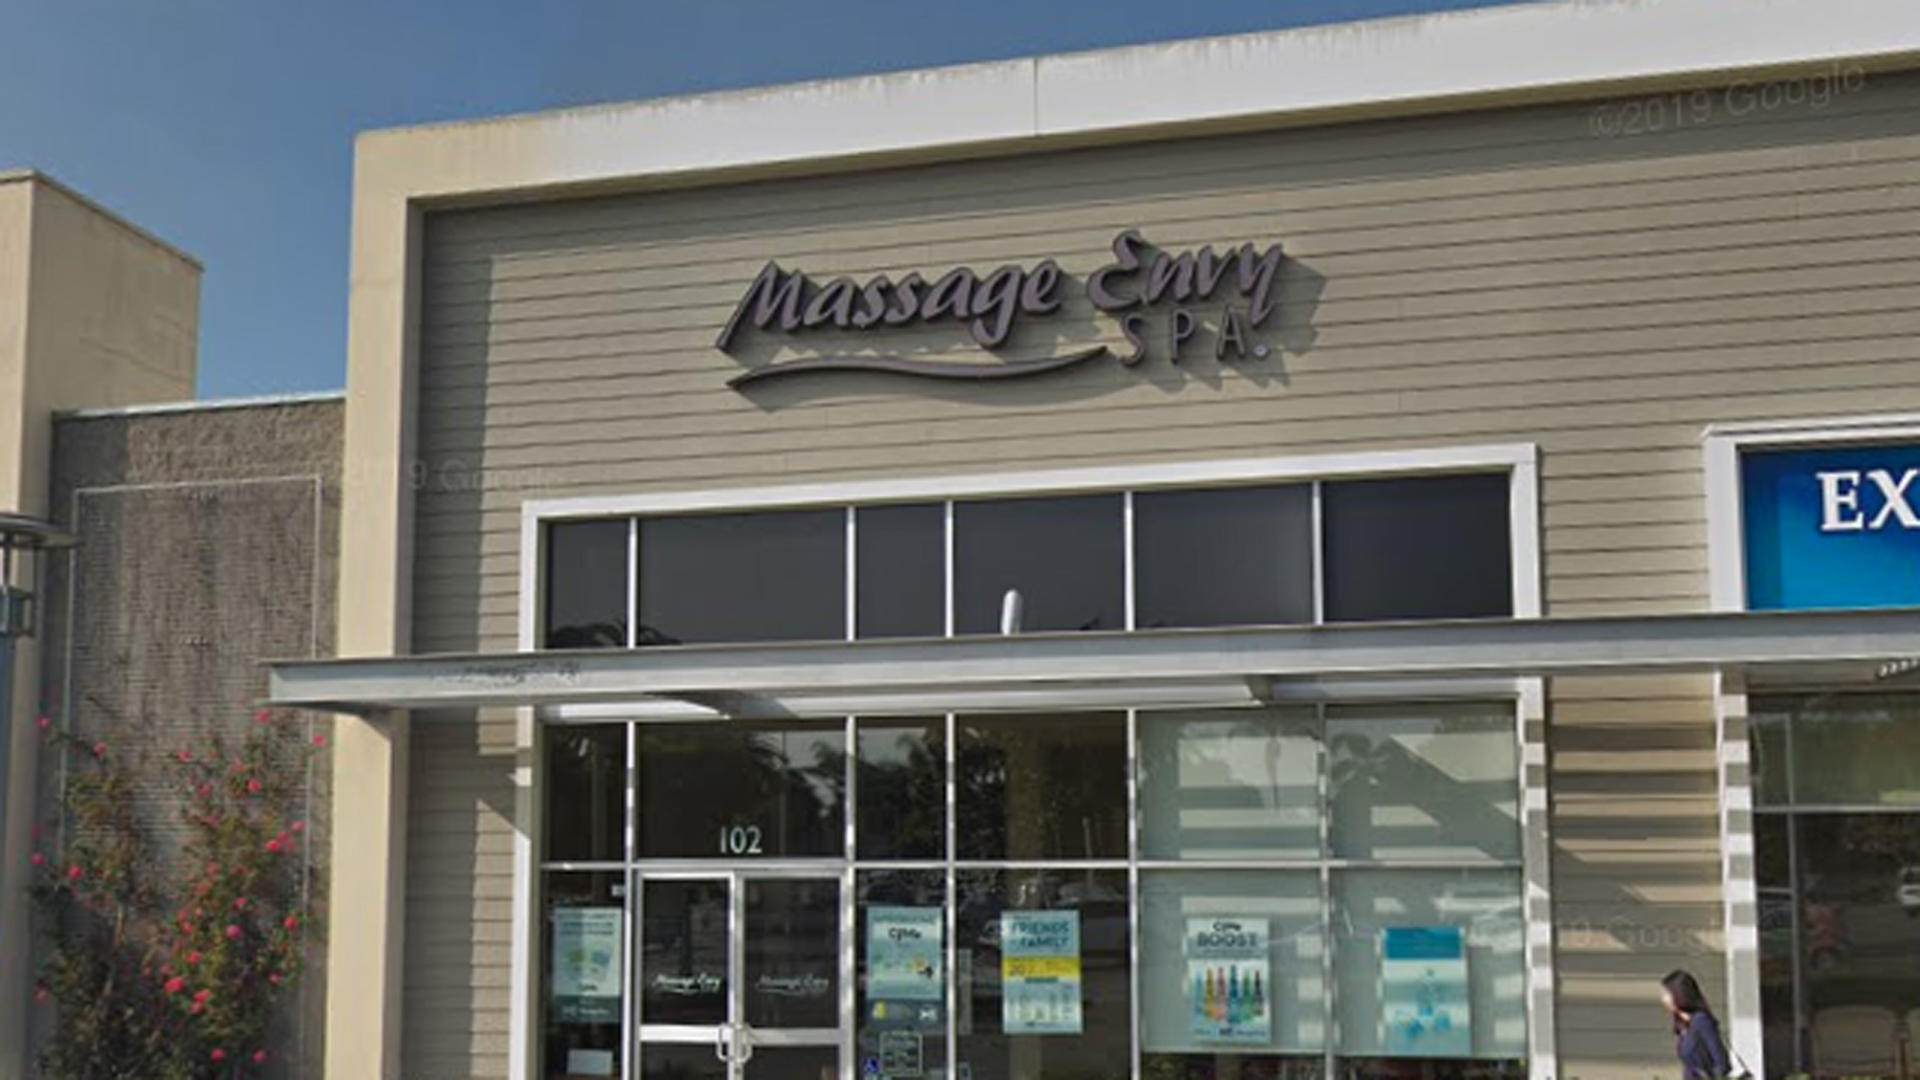 The Massage Envy located at 103 Mills Road is seen in a Google Maps image.